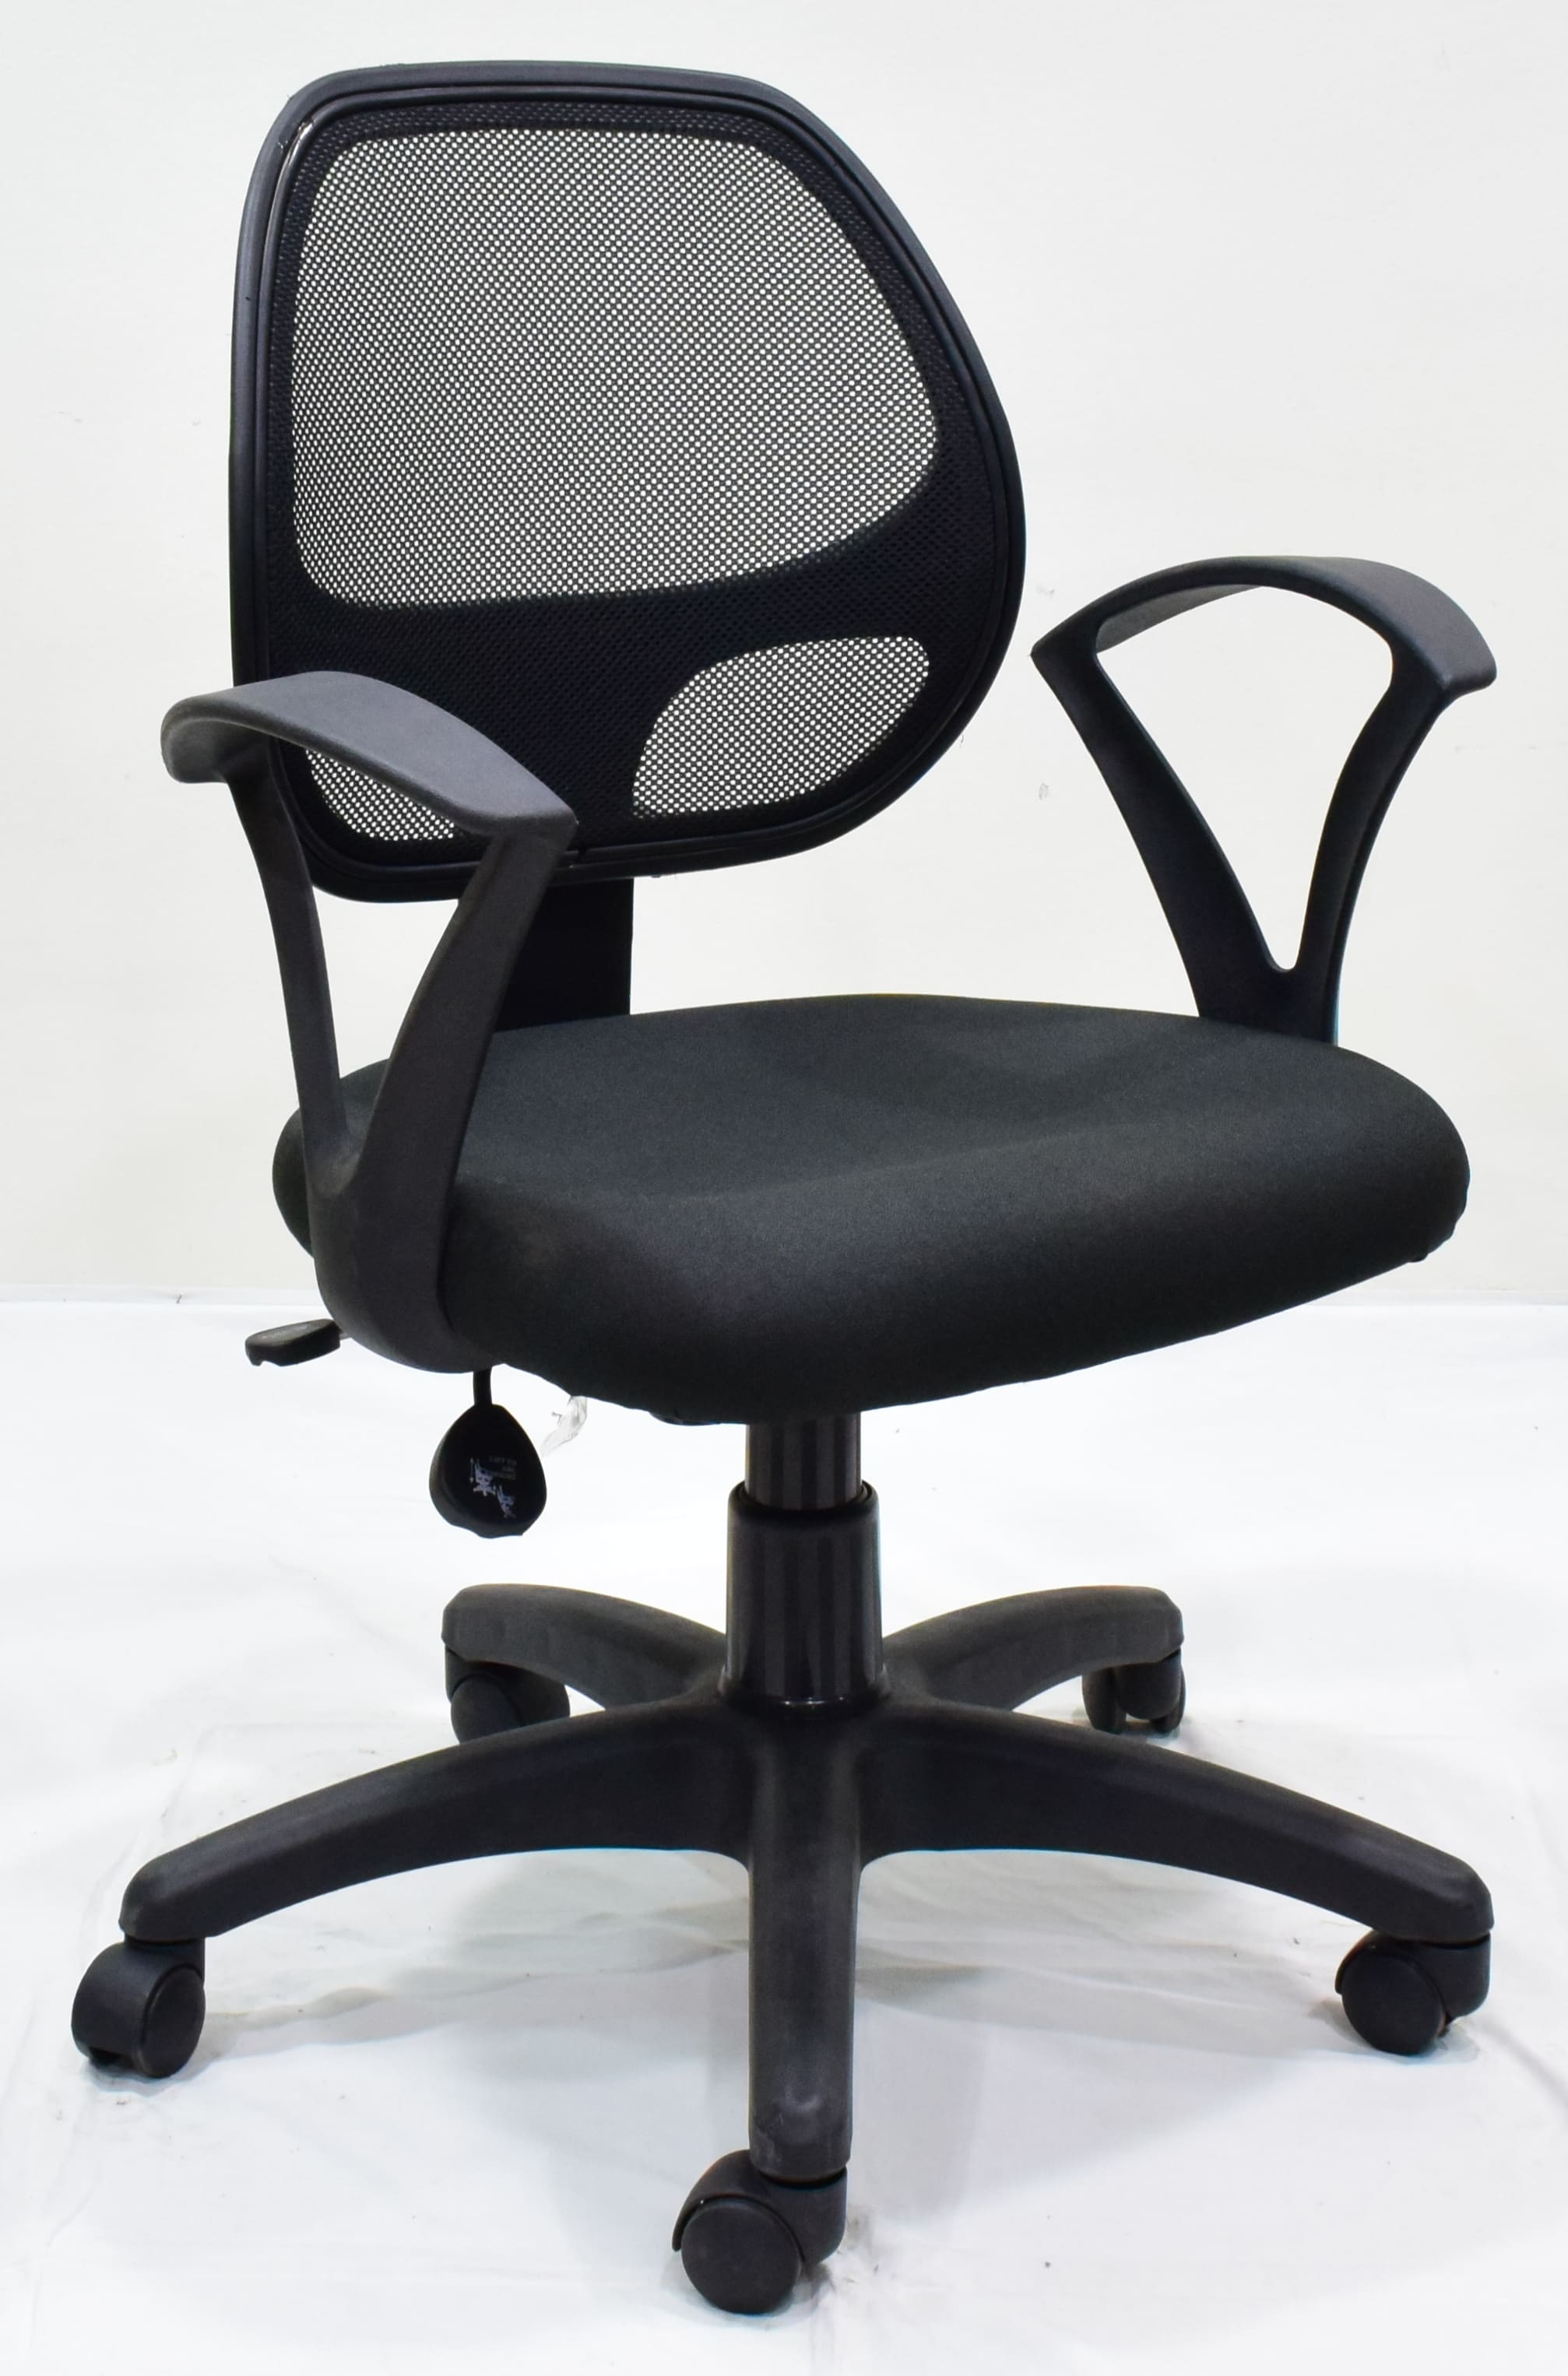 Supreme Plastic Chairs Buy Supreme Plastic Chairs at Best Prices